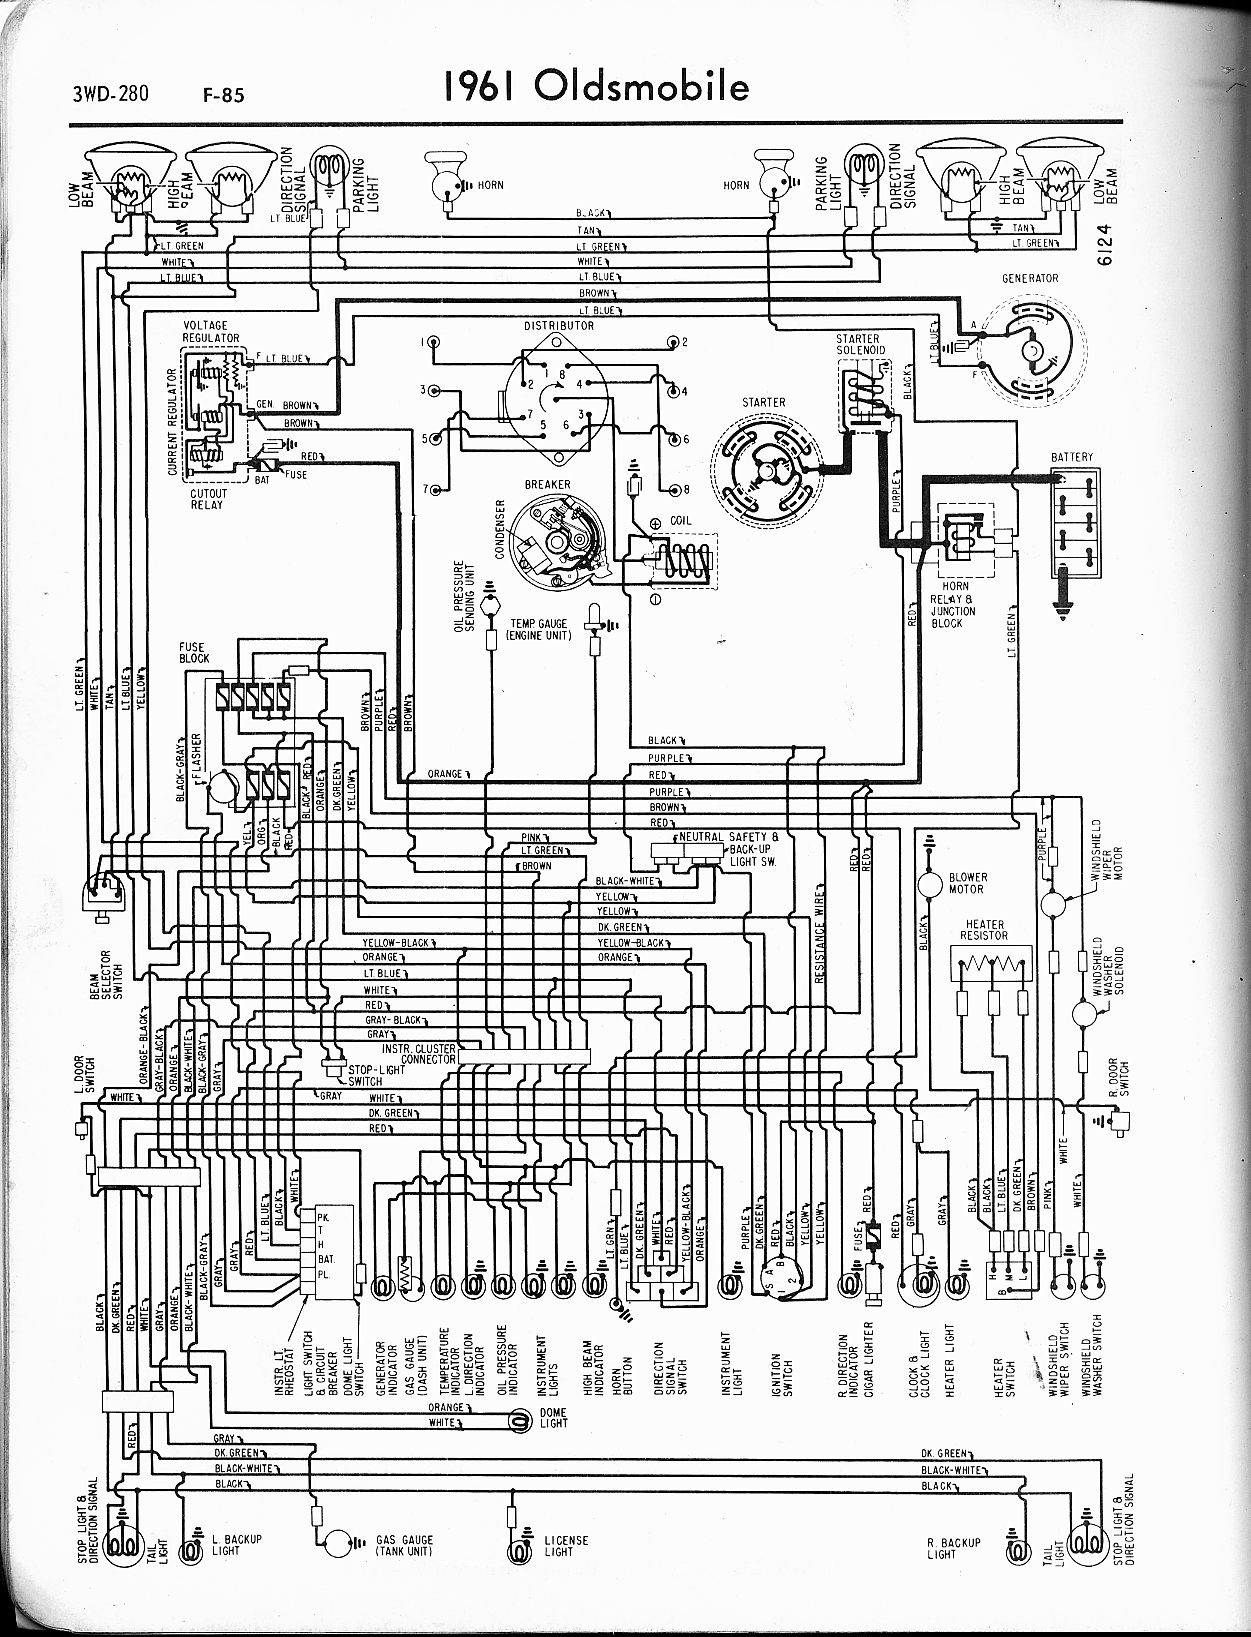 MWire5765 280 oldsmobile wiring diagrams the old car manual project caterham wiring diagram at gsmx.co